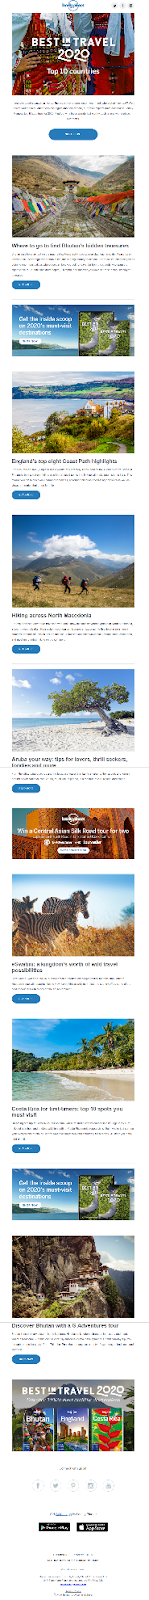 Send professional-looking emails with CTA buttons